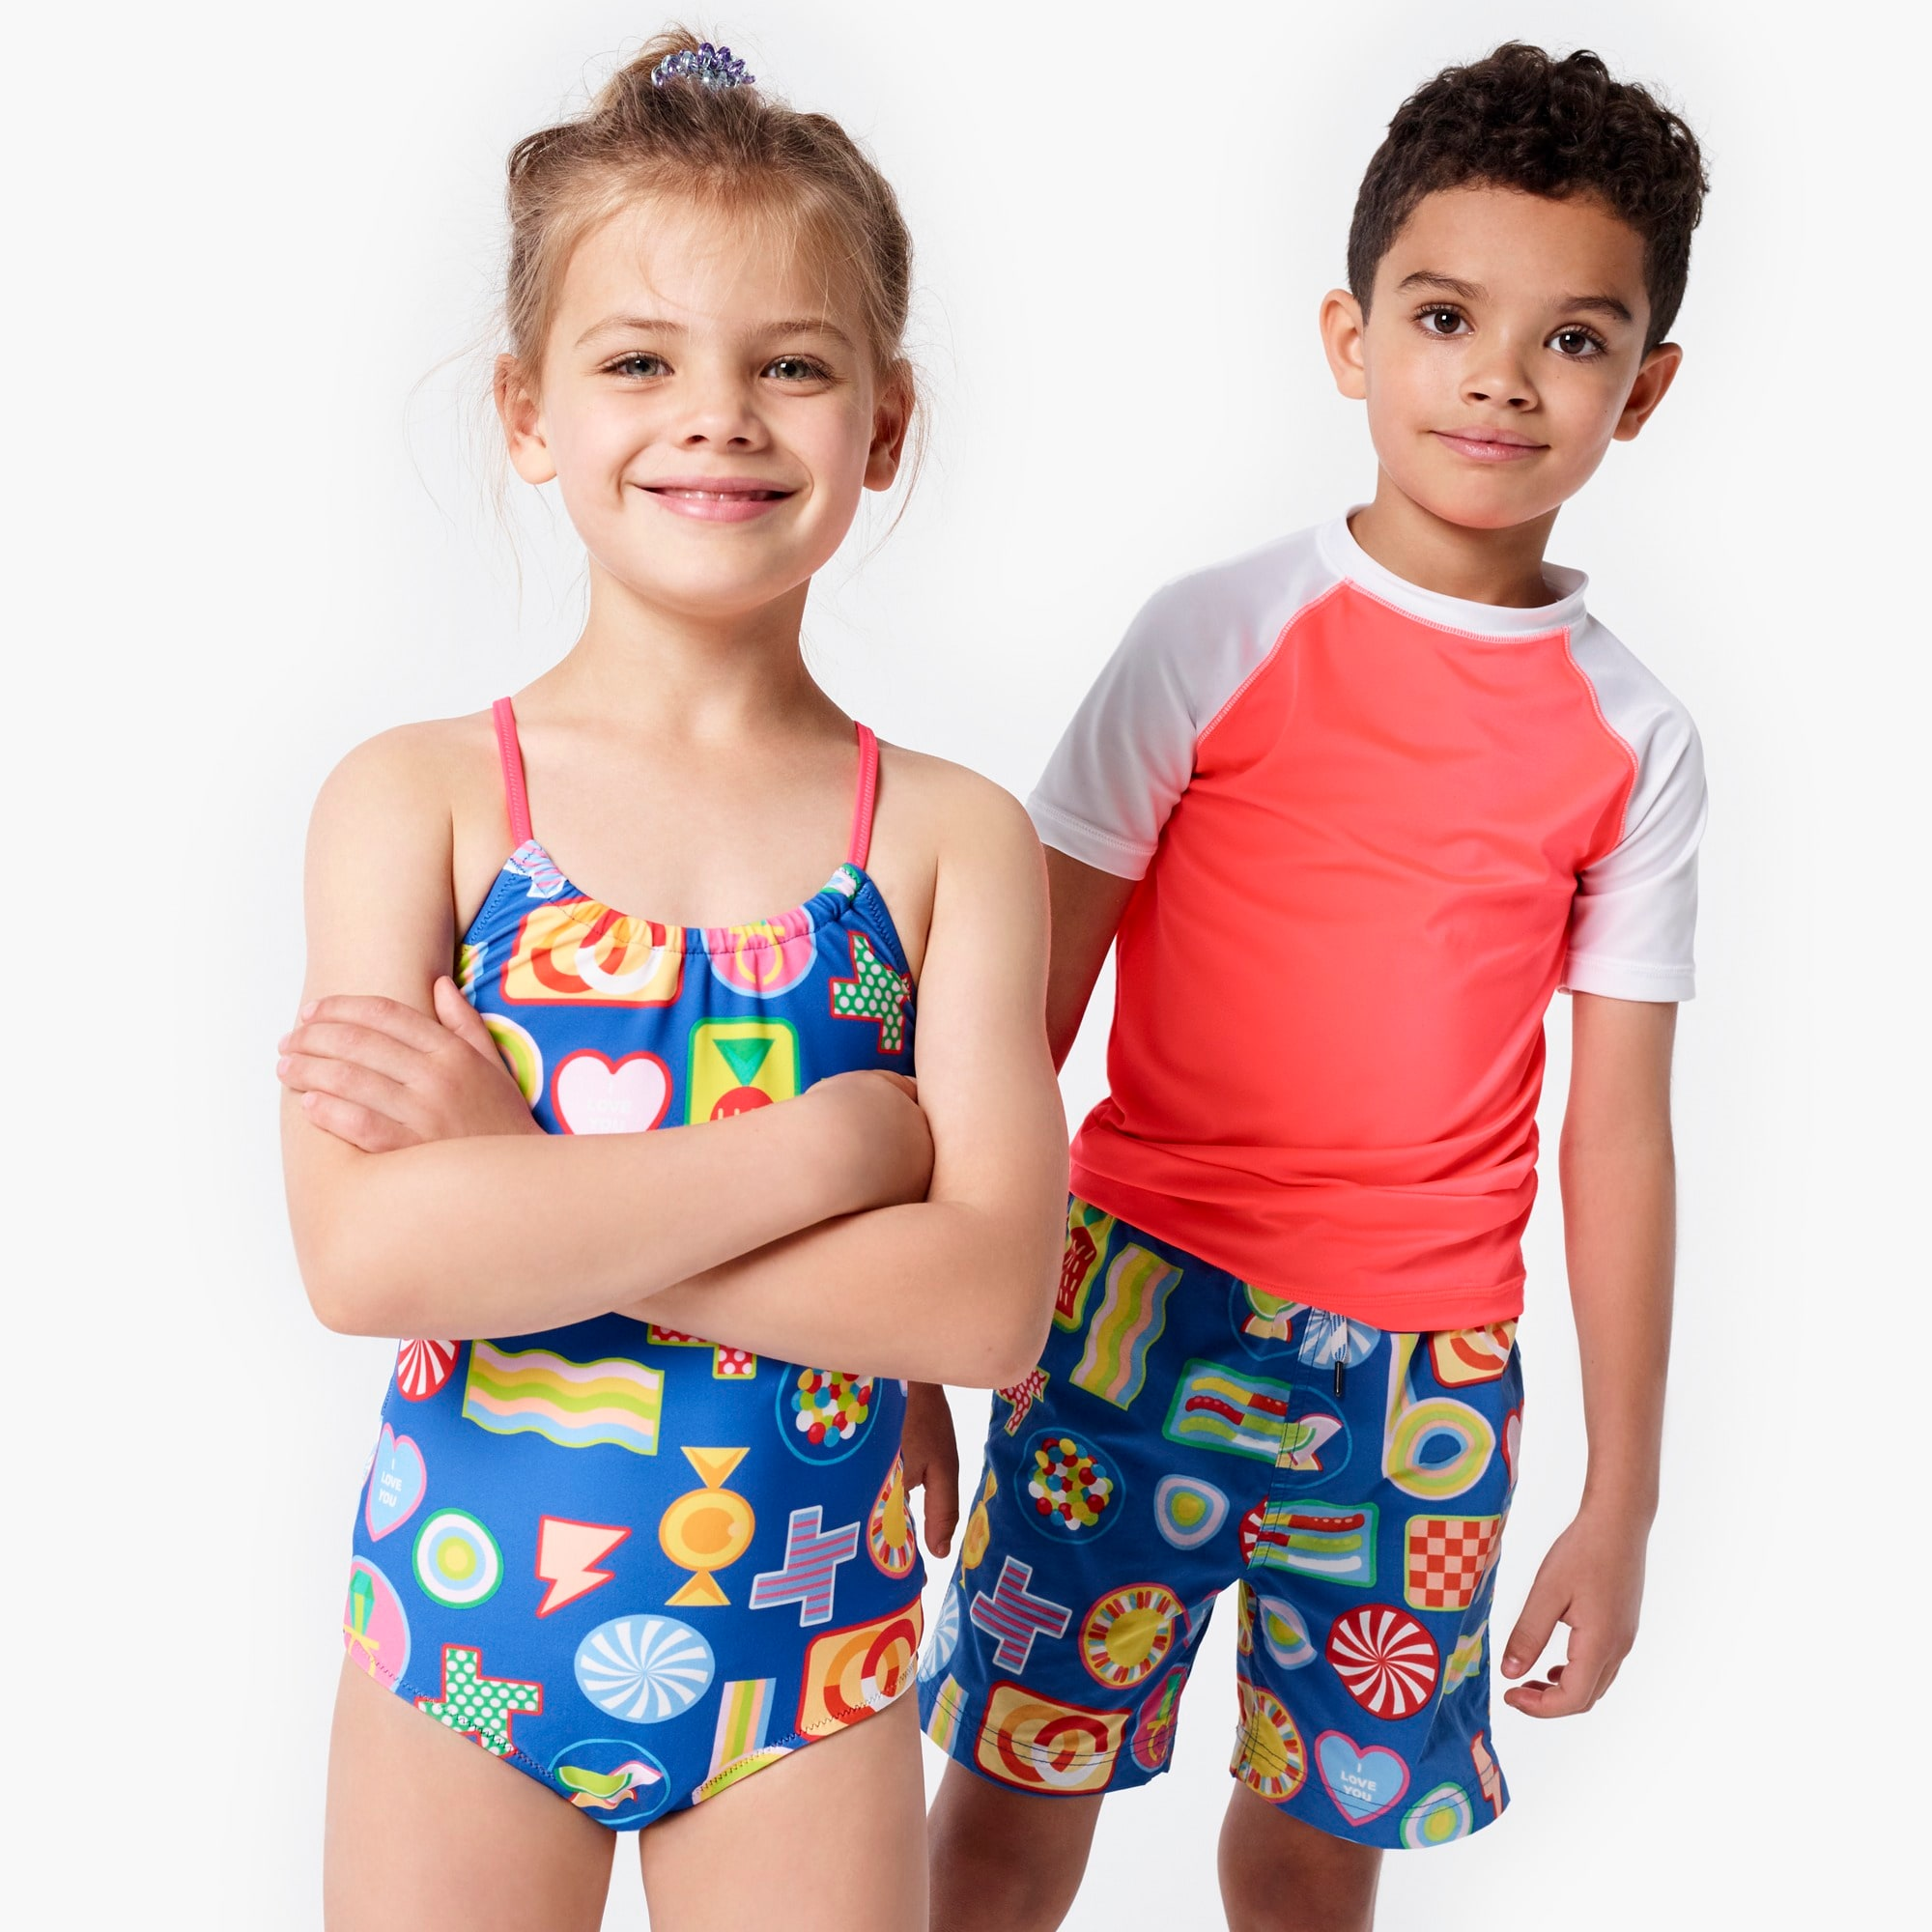 girls Girls' crewcuts X Kid Made Modern one-piece swimsuit